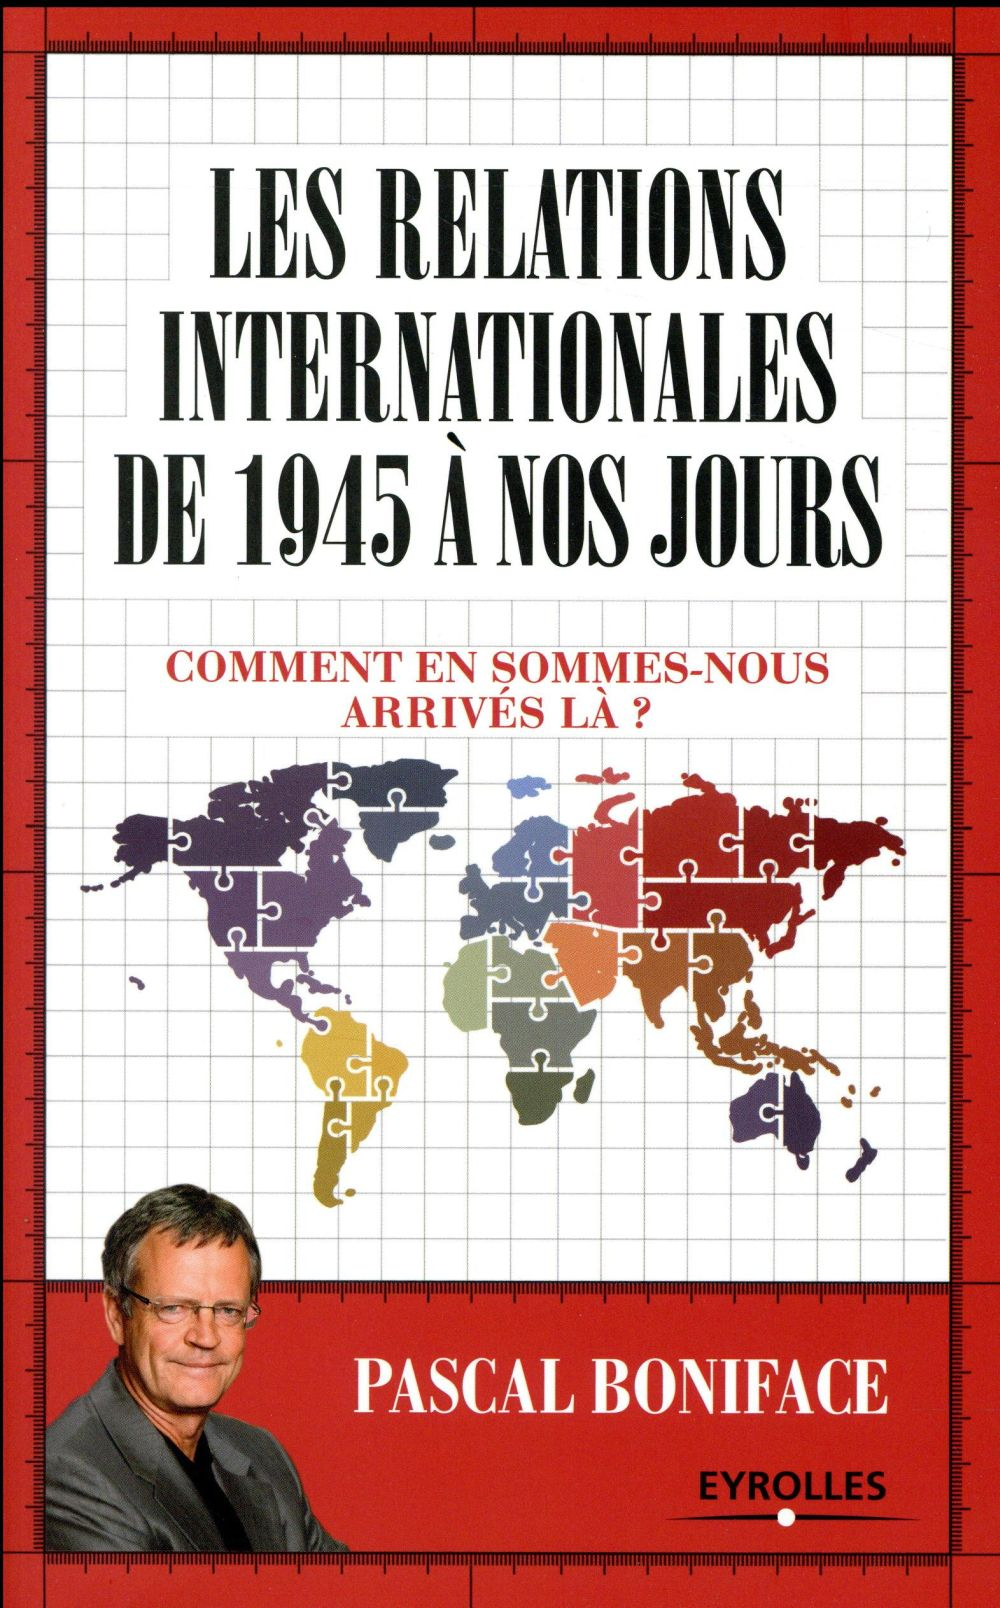 LES RELATIONS INTERNATIONALES DE 1945 A NOS JOURS